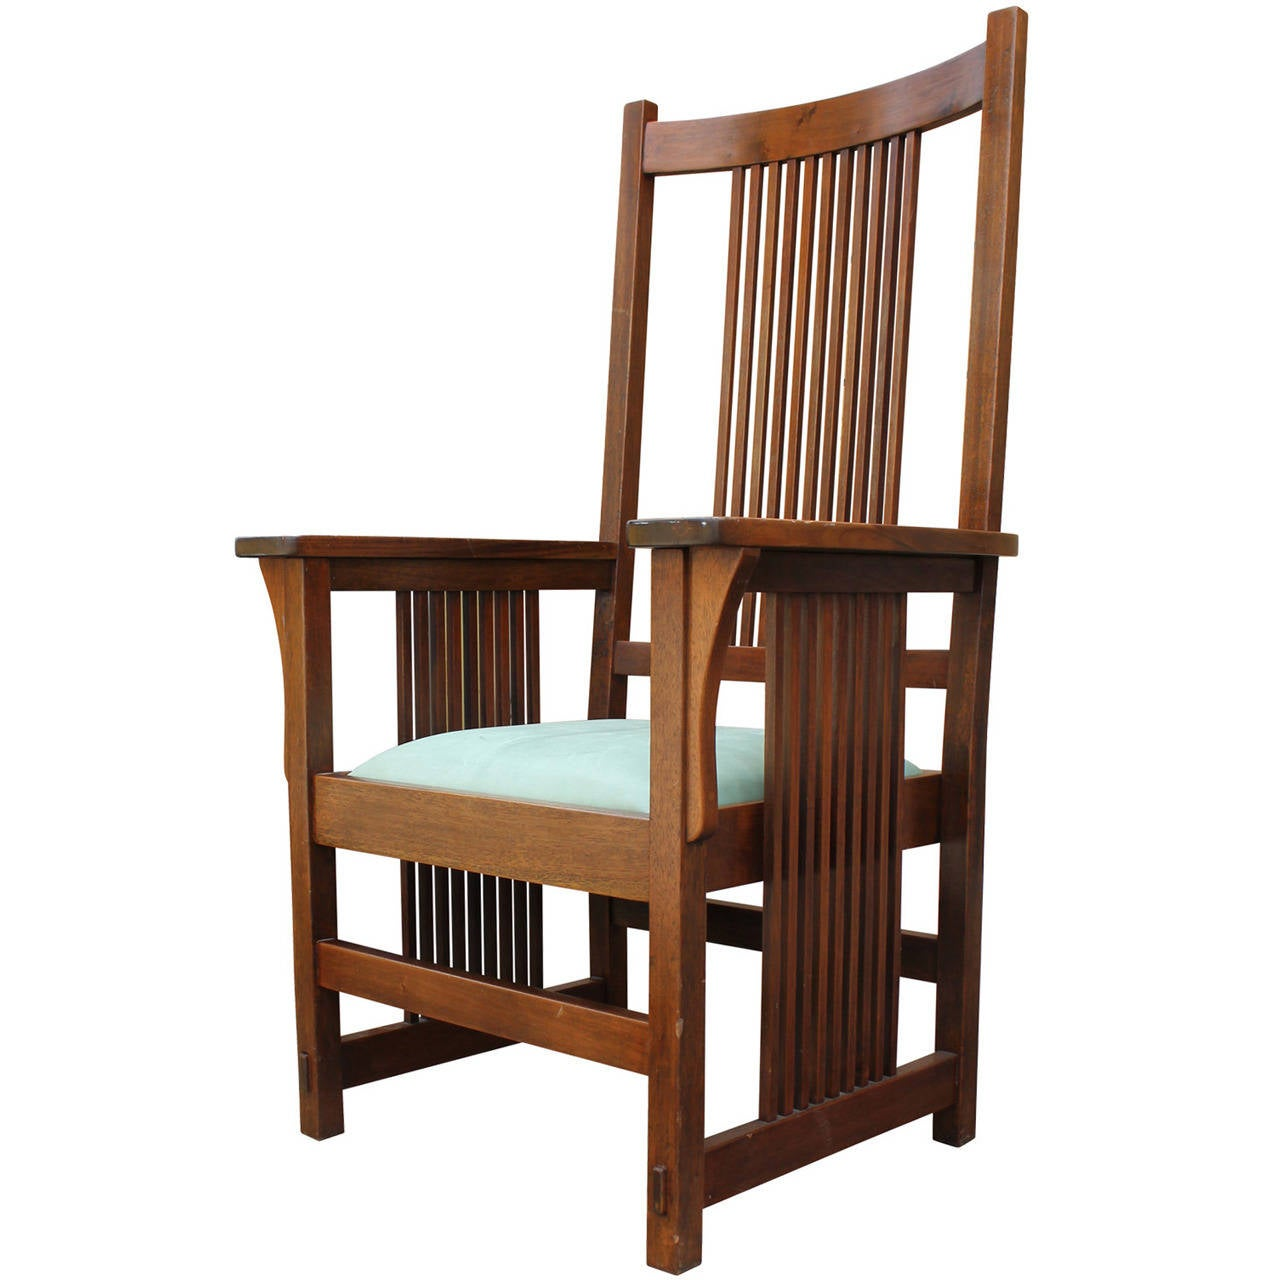 Frank lloyd wright style armchair at 1stdibs for Frank lloyd wright stile prateria